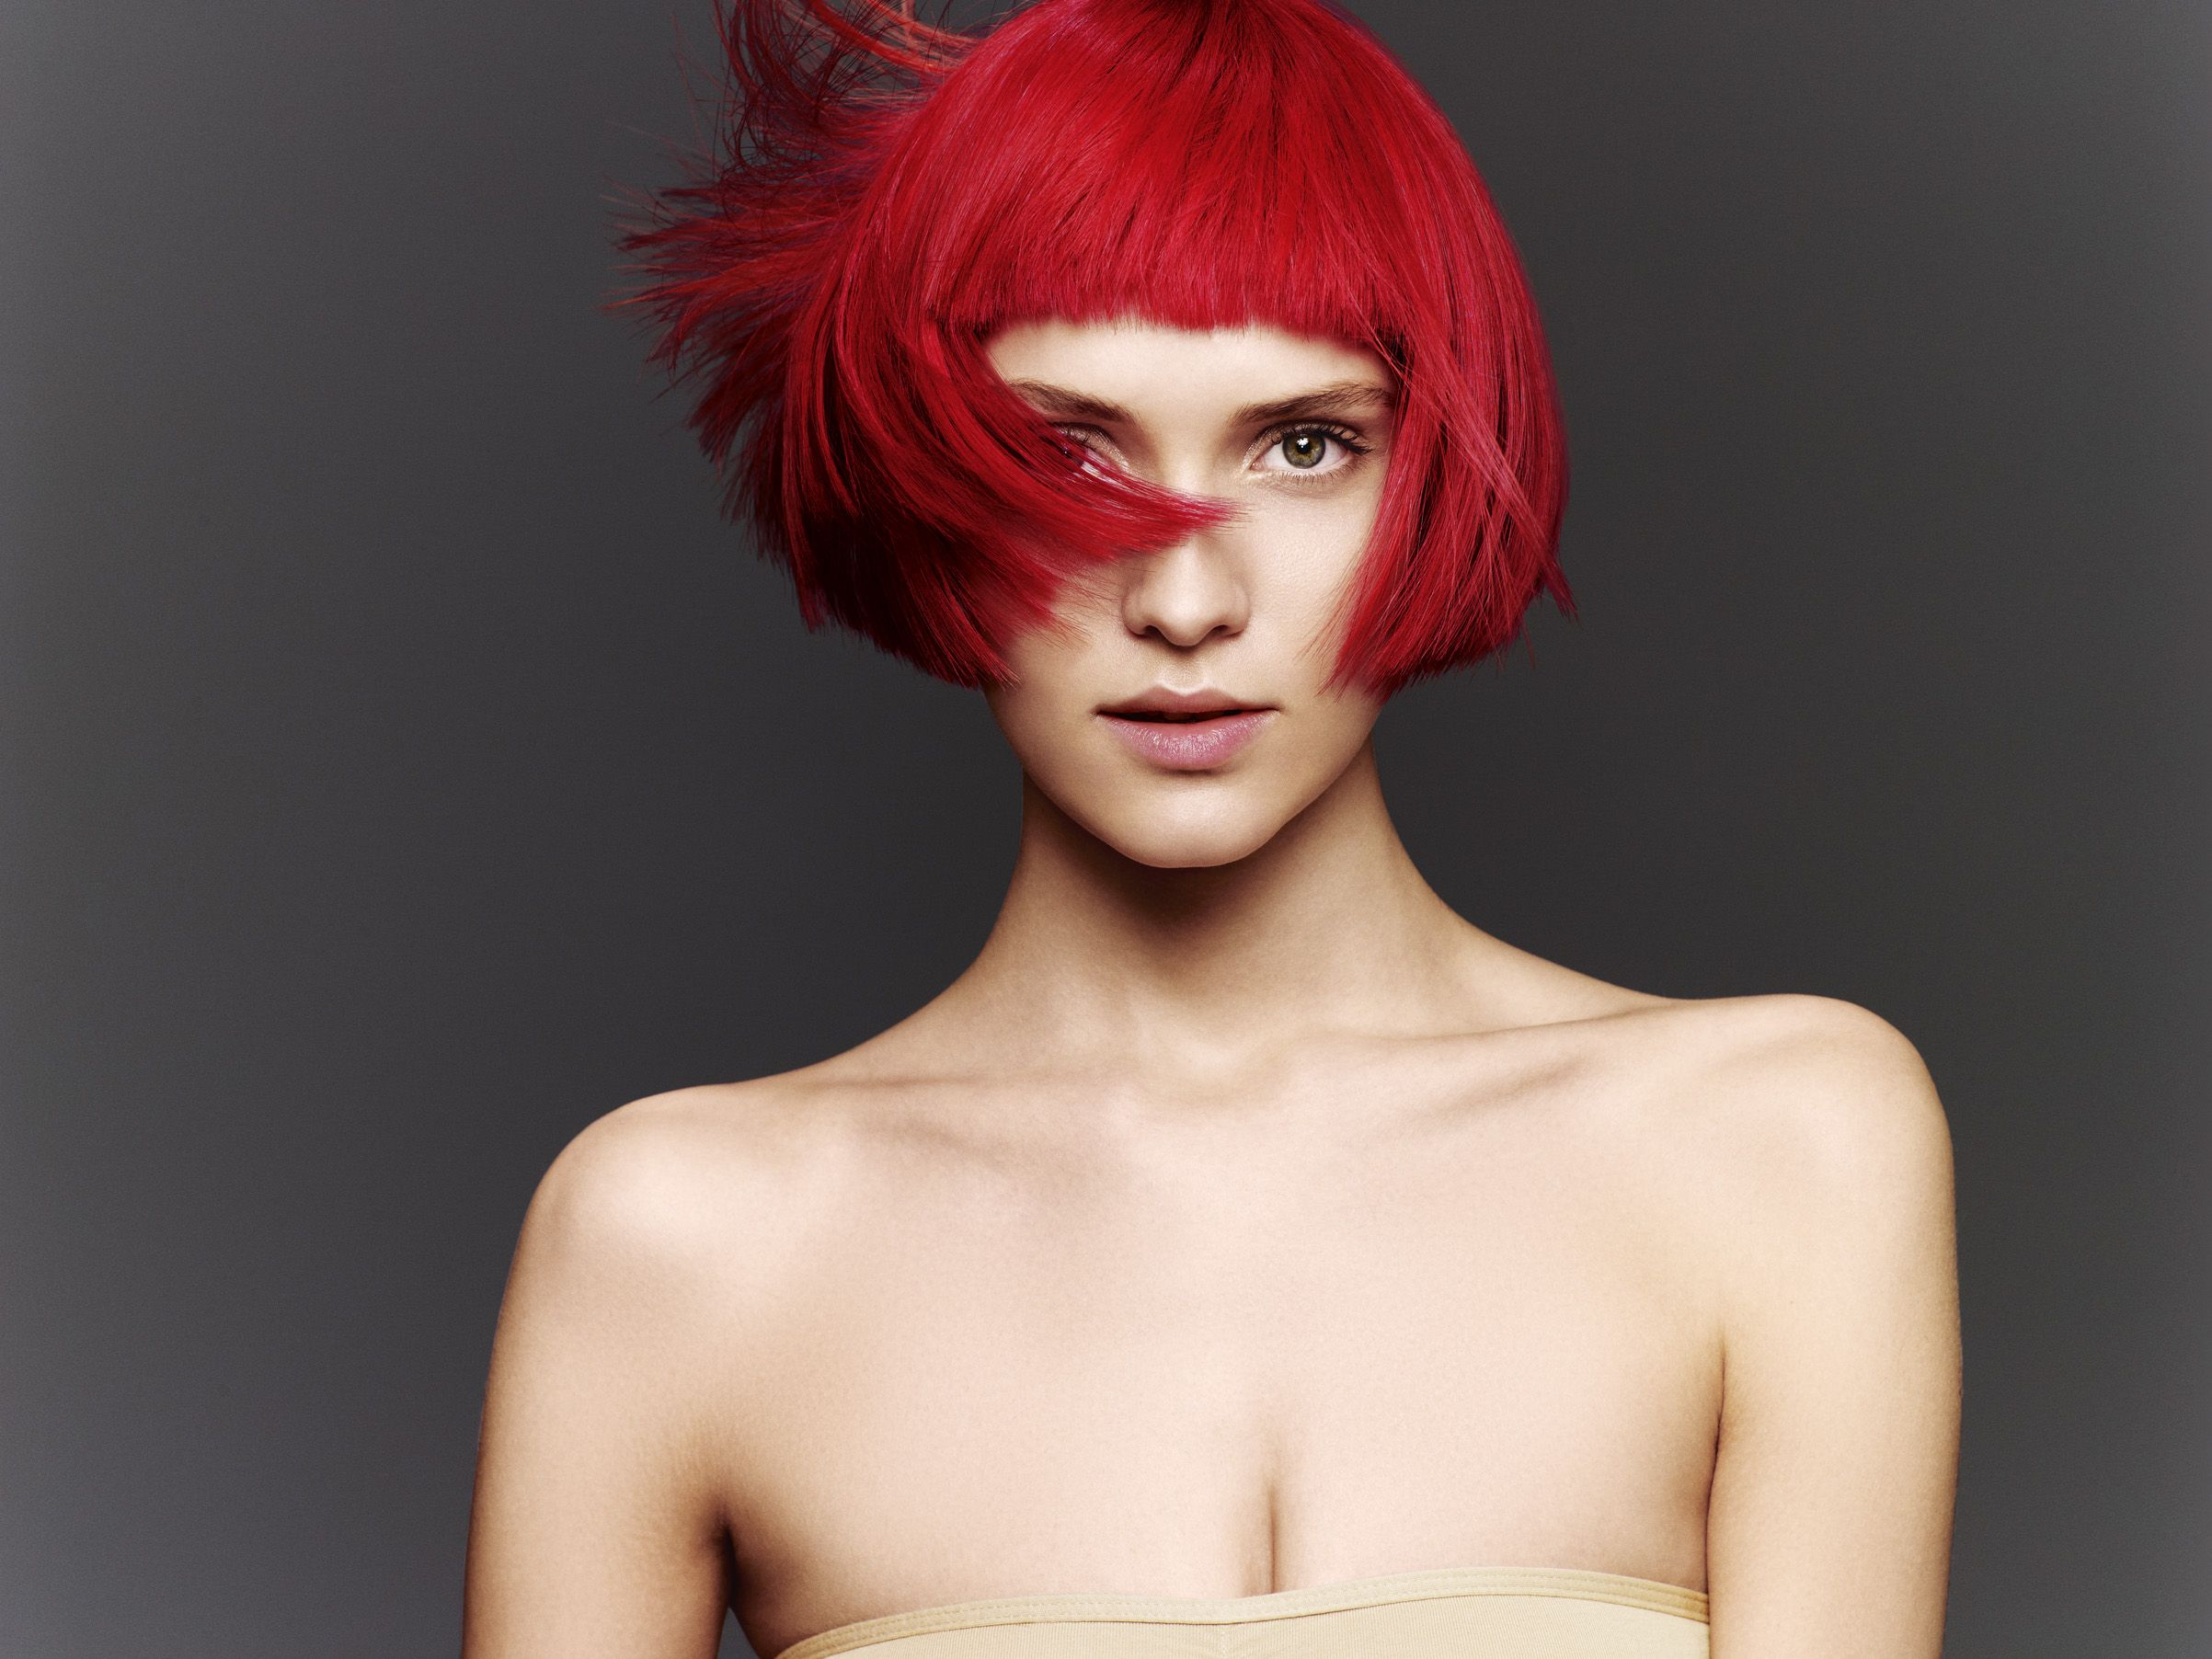 Perm for very short hair this epic perm really speaks for itself - Aveda Full Spectrum Permanent Hair Color Give Your Look A Little Punch With Aveda Customized